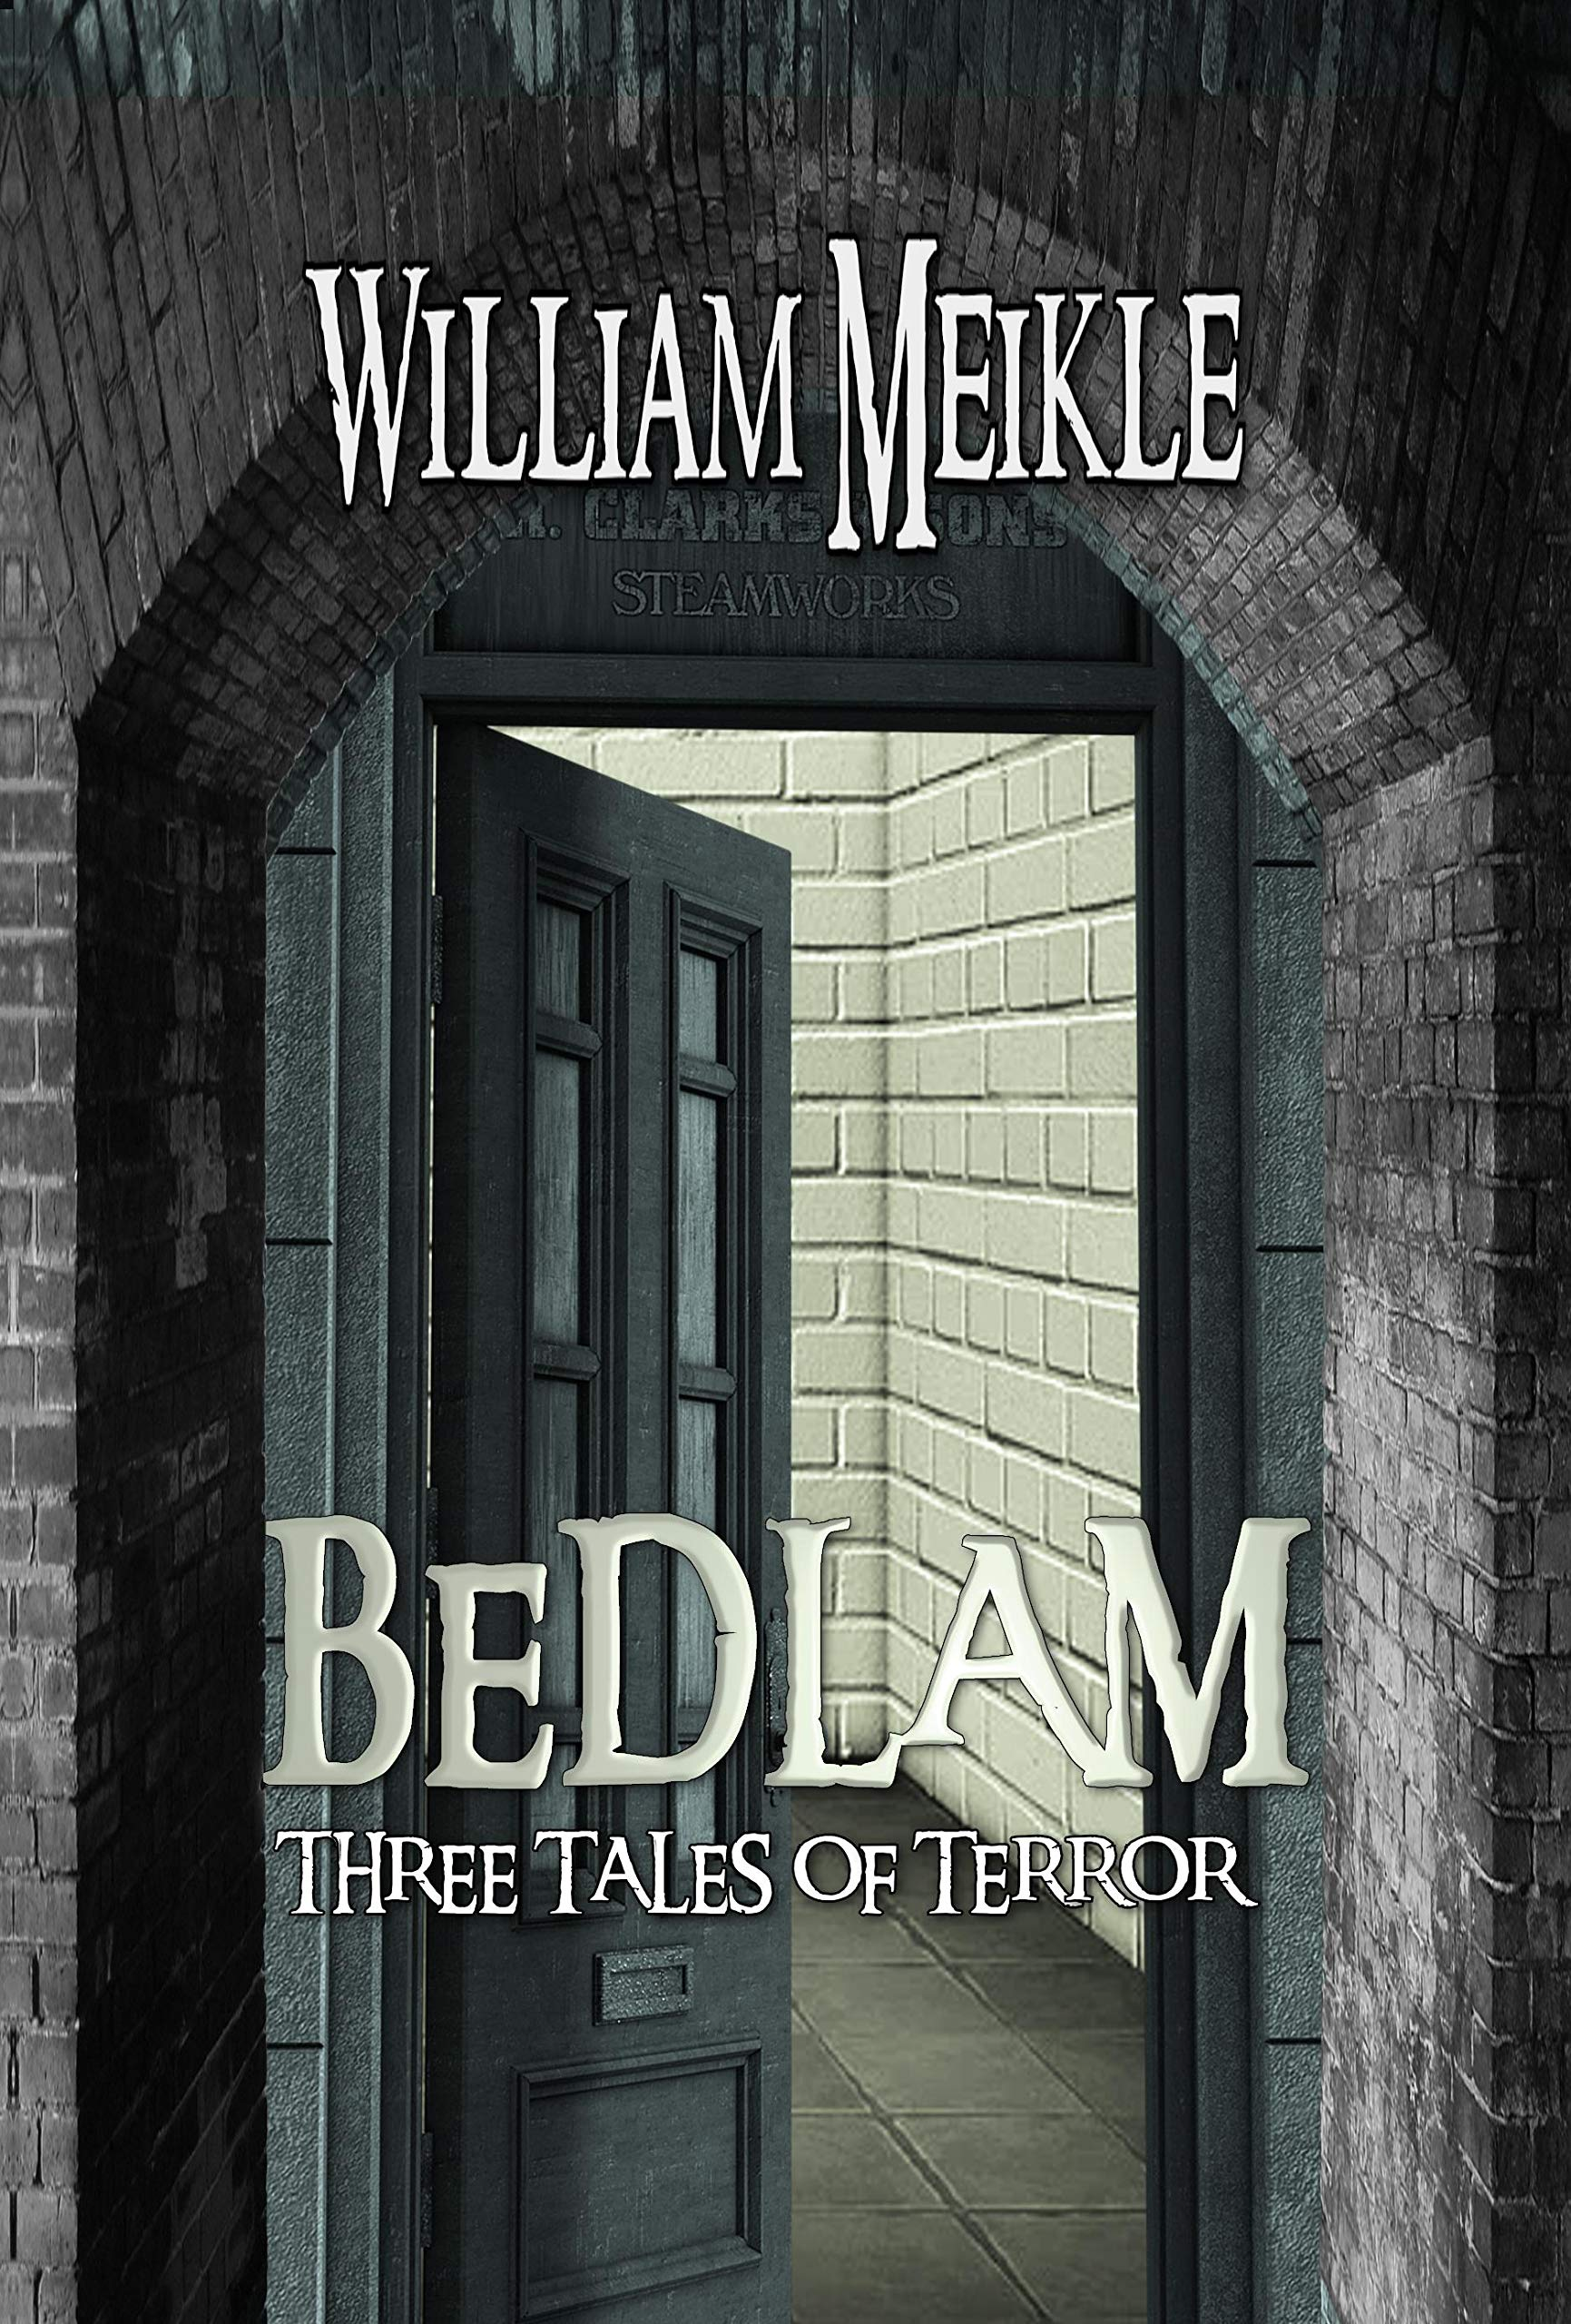 Bedlam: Three Tales of Terror (The William Meikle Chapbook Collection 41)